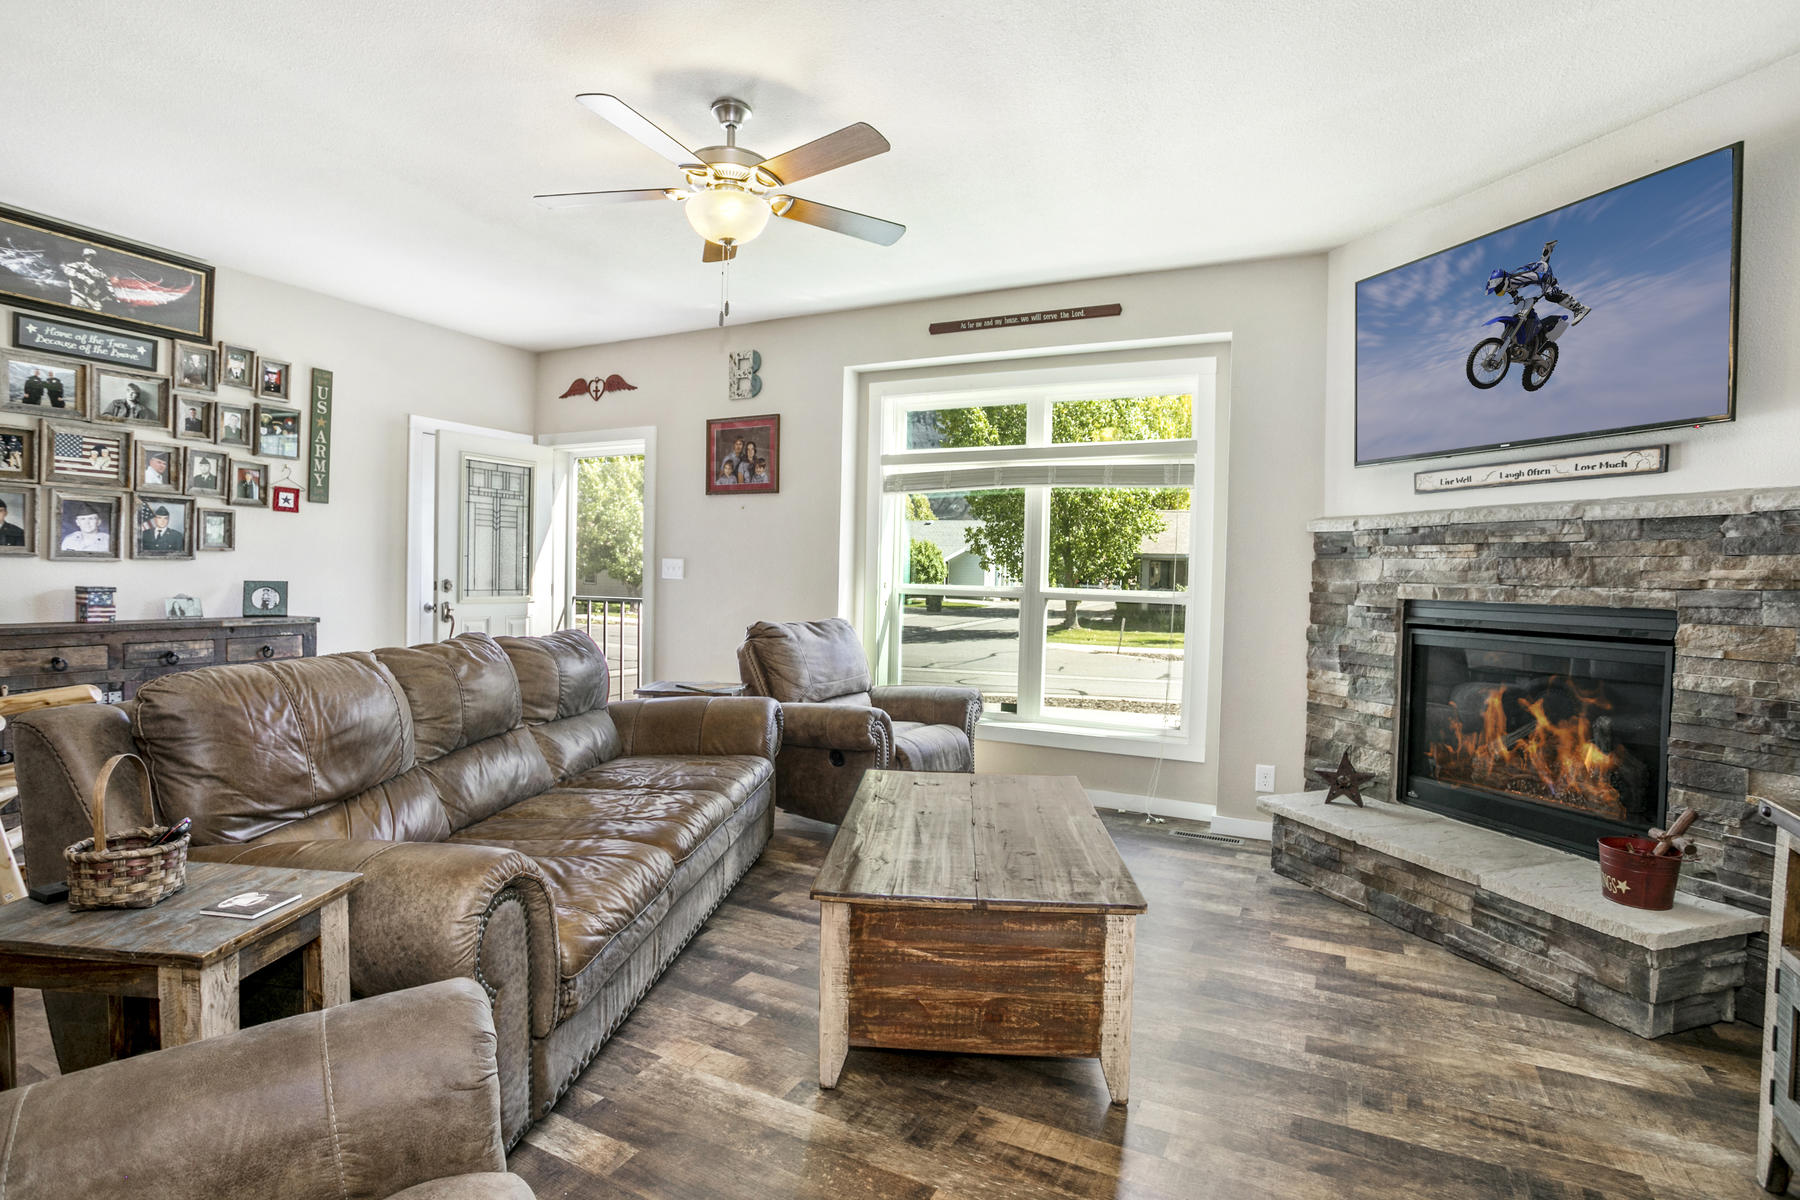 Property for Active at Upgraded ranch style home in Two Rivers Village 158 Bluegill Loop Gypsum, Colorado 81637 United States